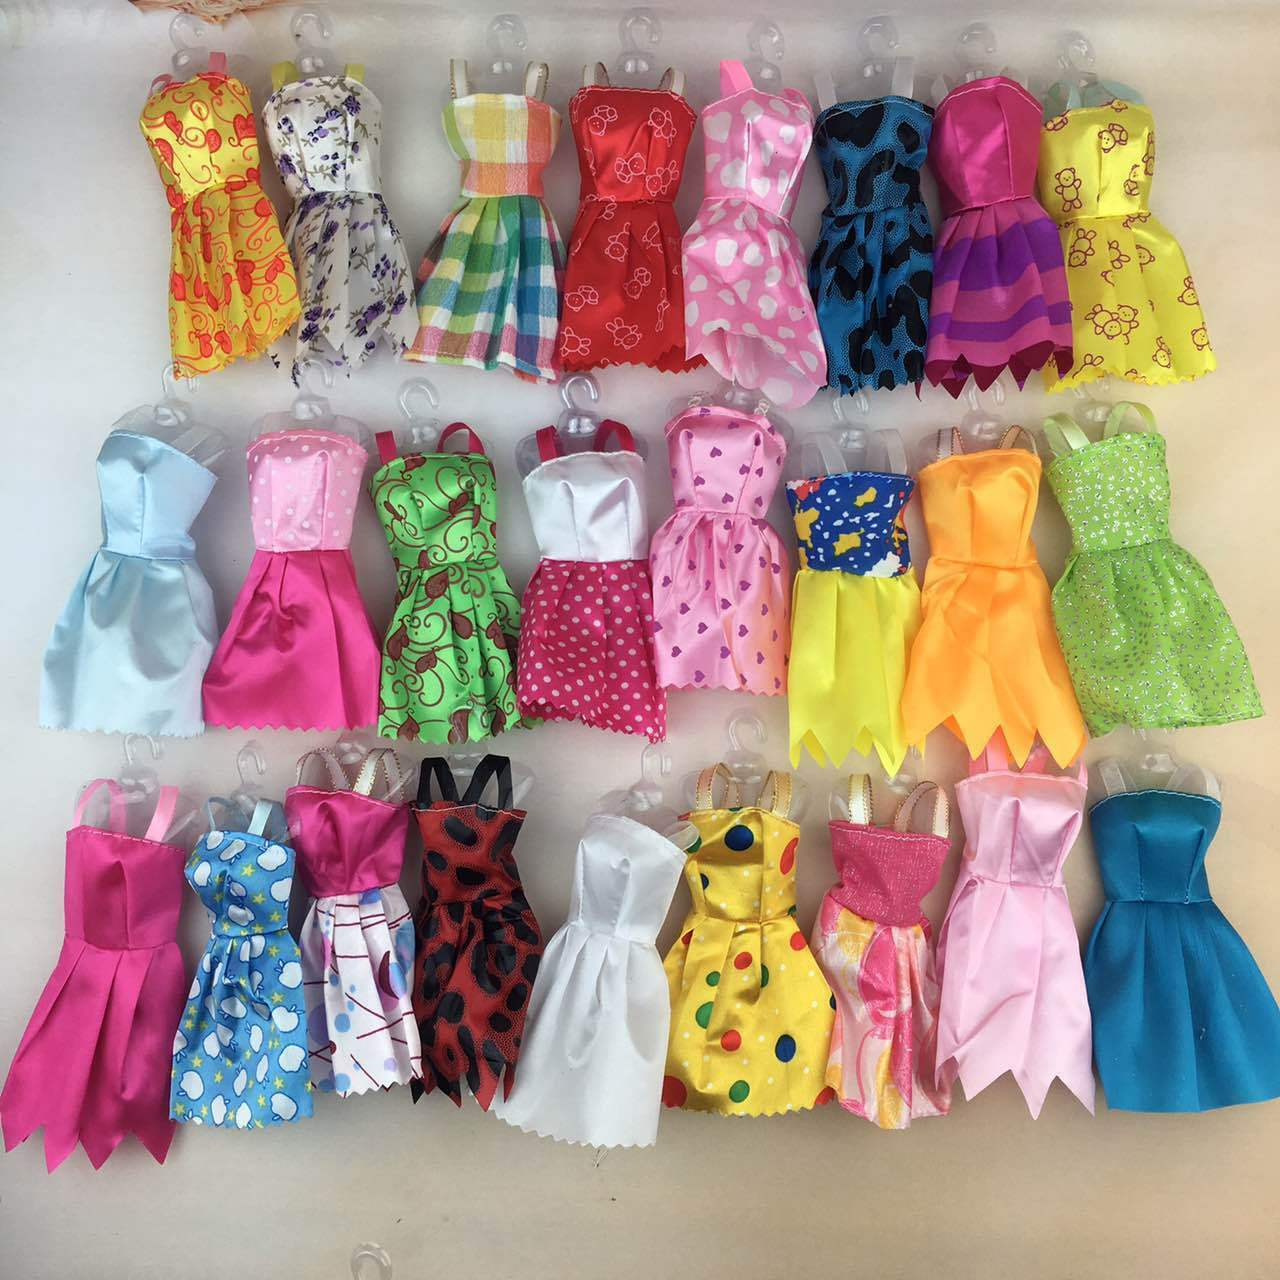 30 Items For Barbie Doll Dresses, Shoes,Jewellery Clothes Set Accessories Uk 2